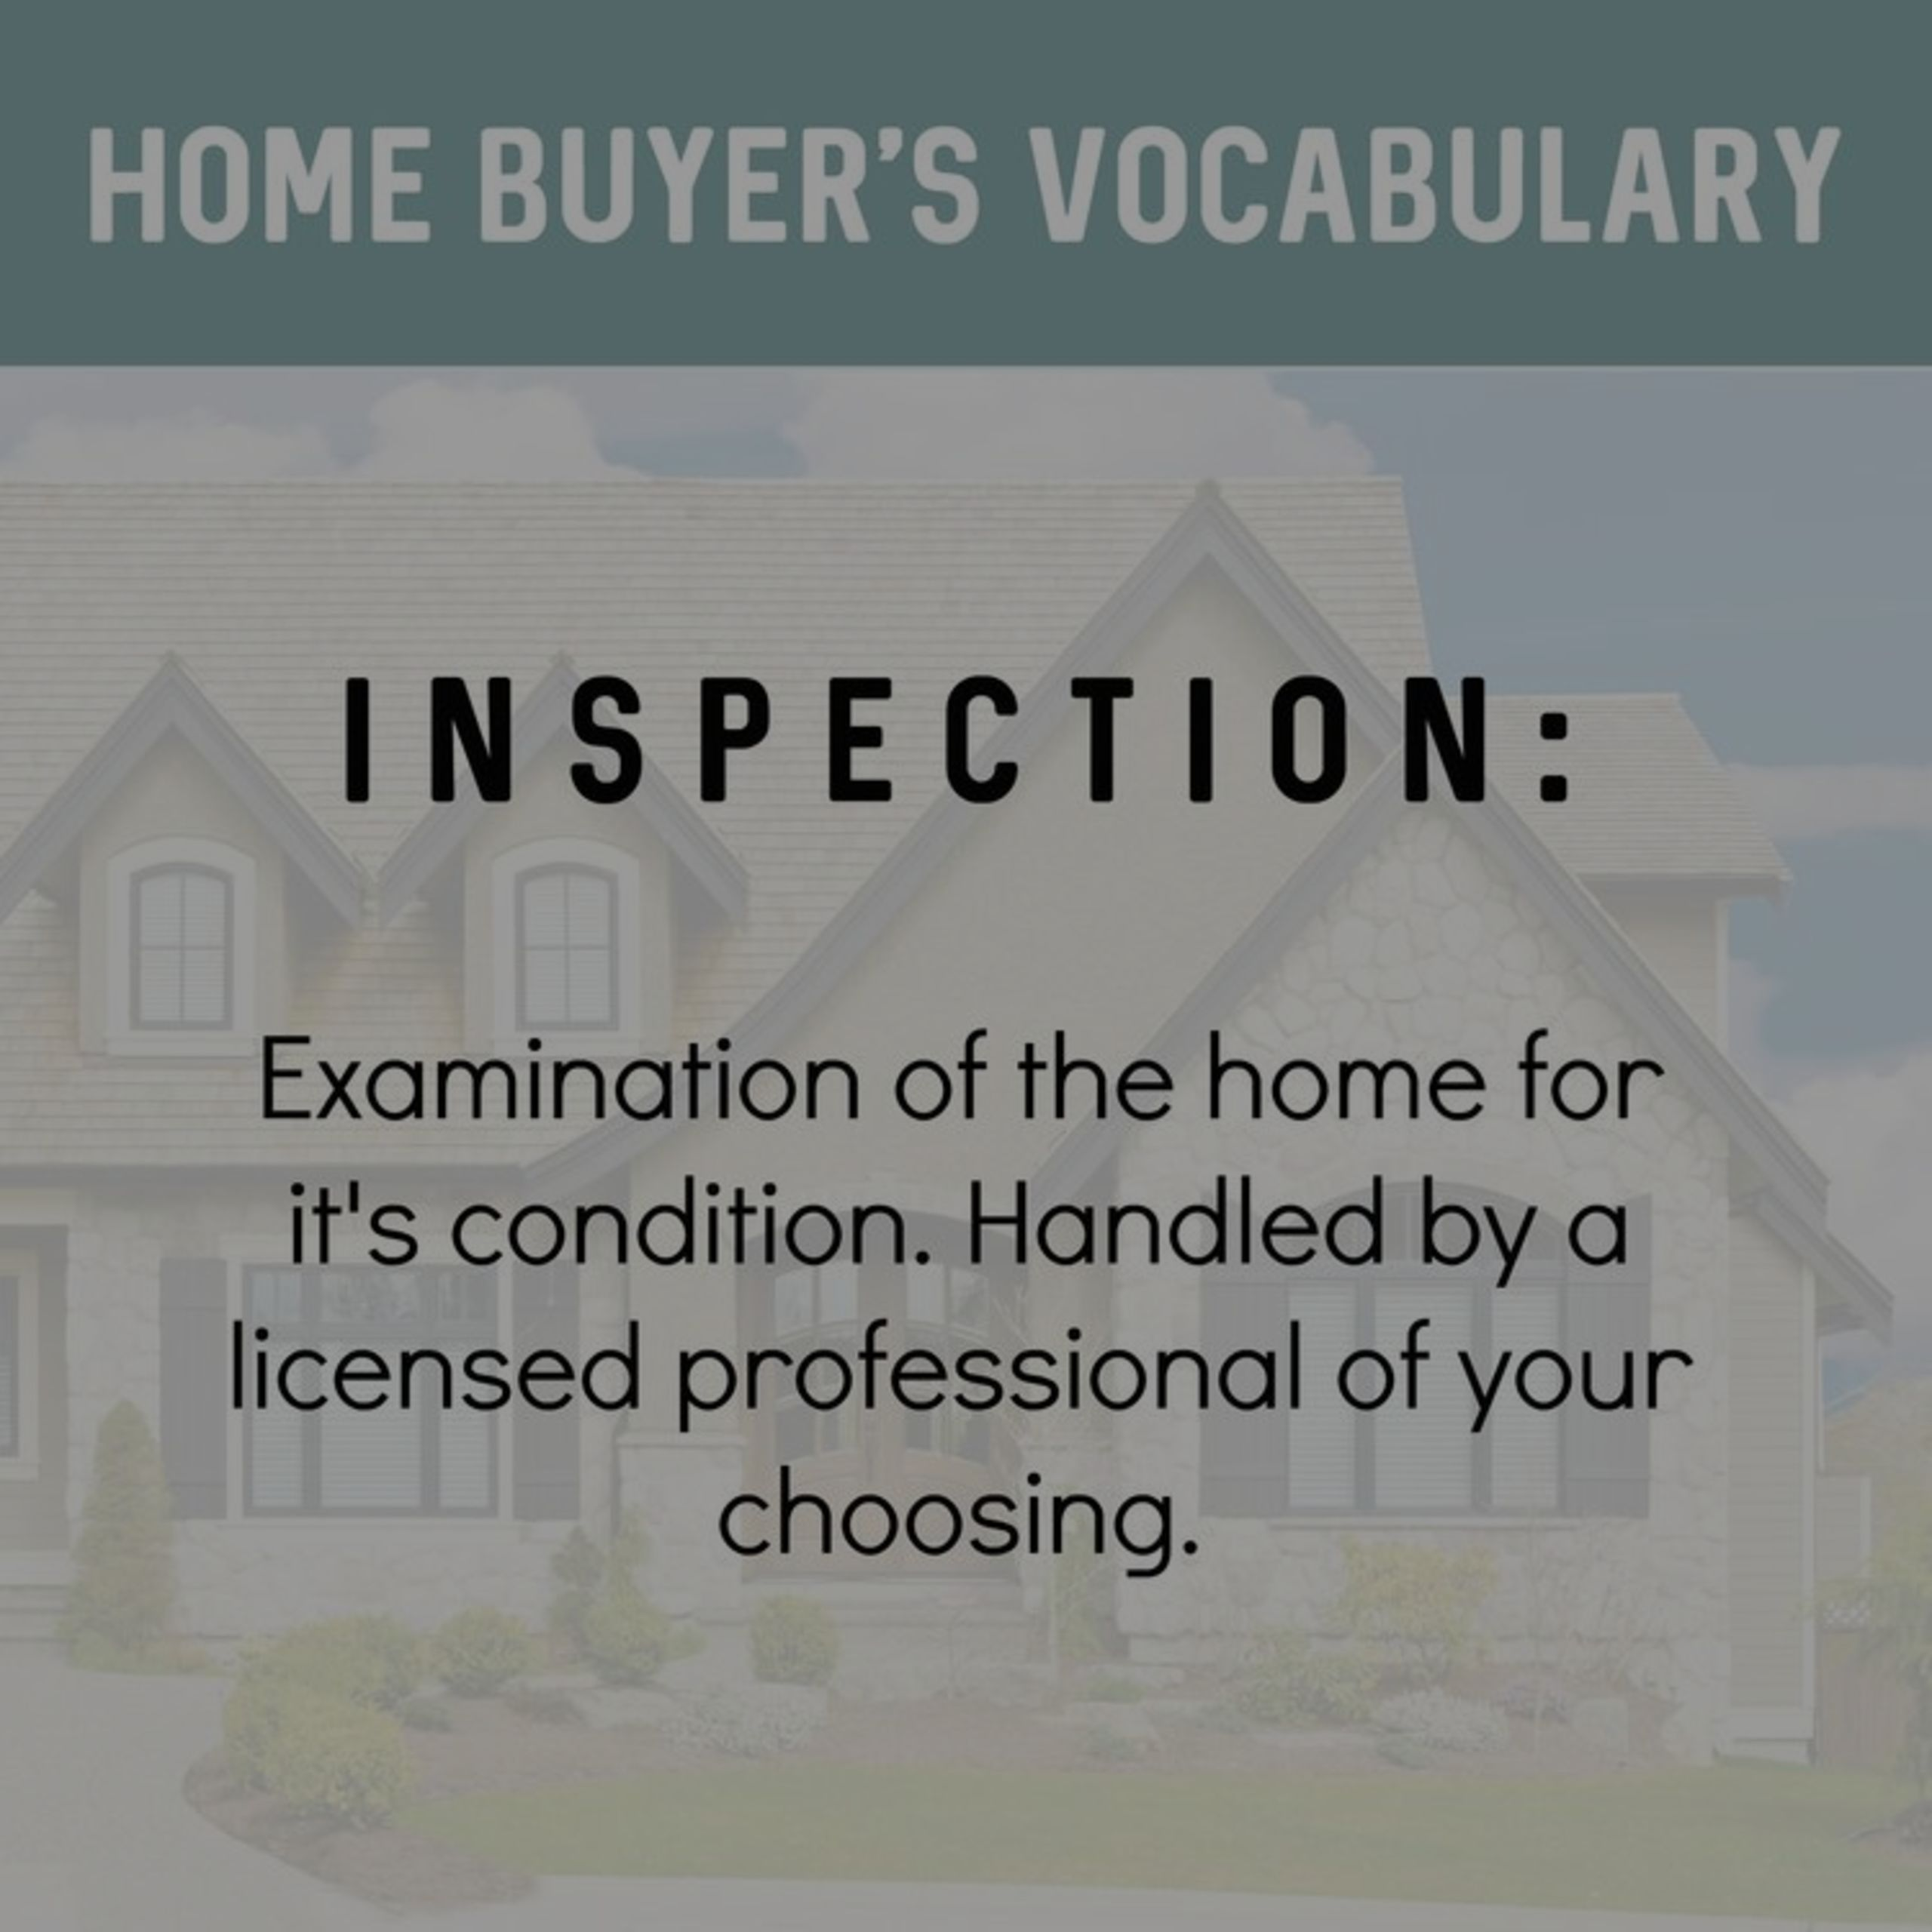 What is an inspection? Do I need one?